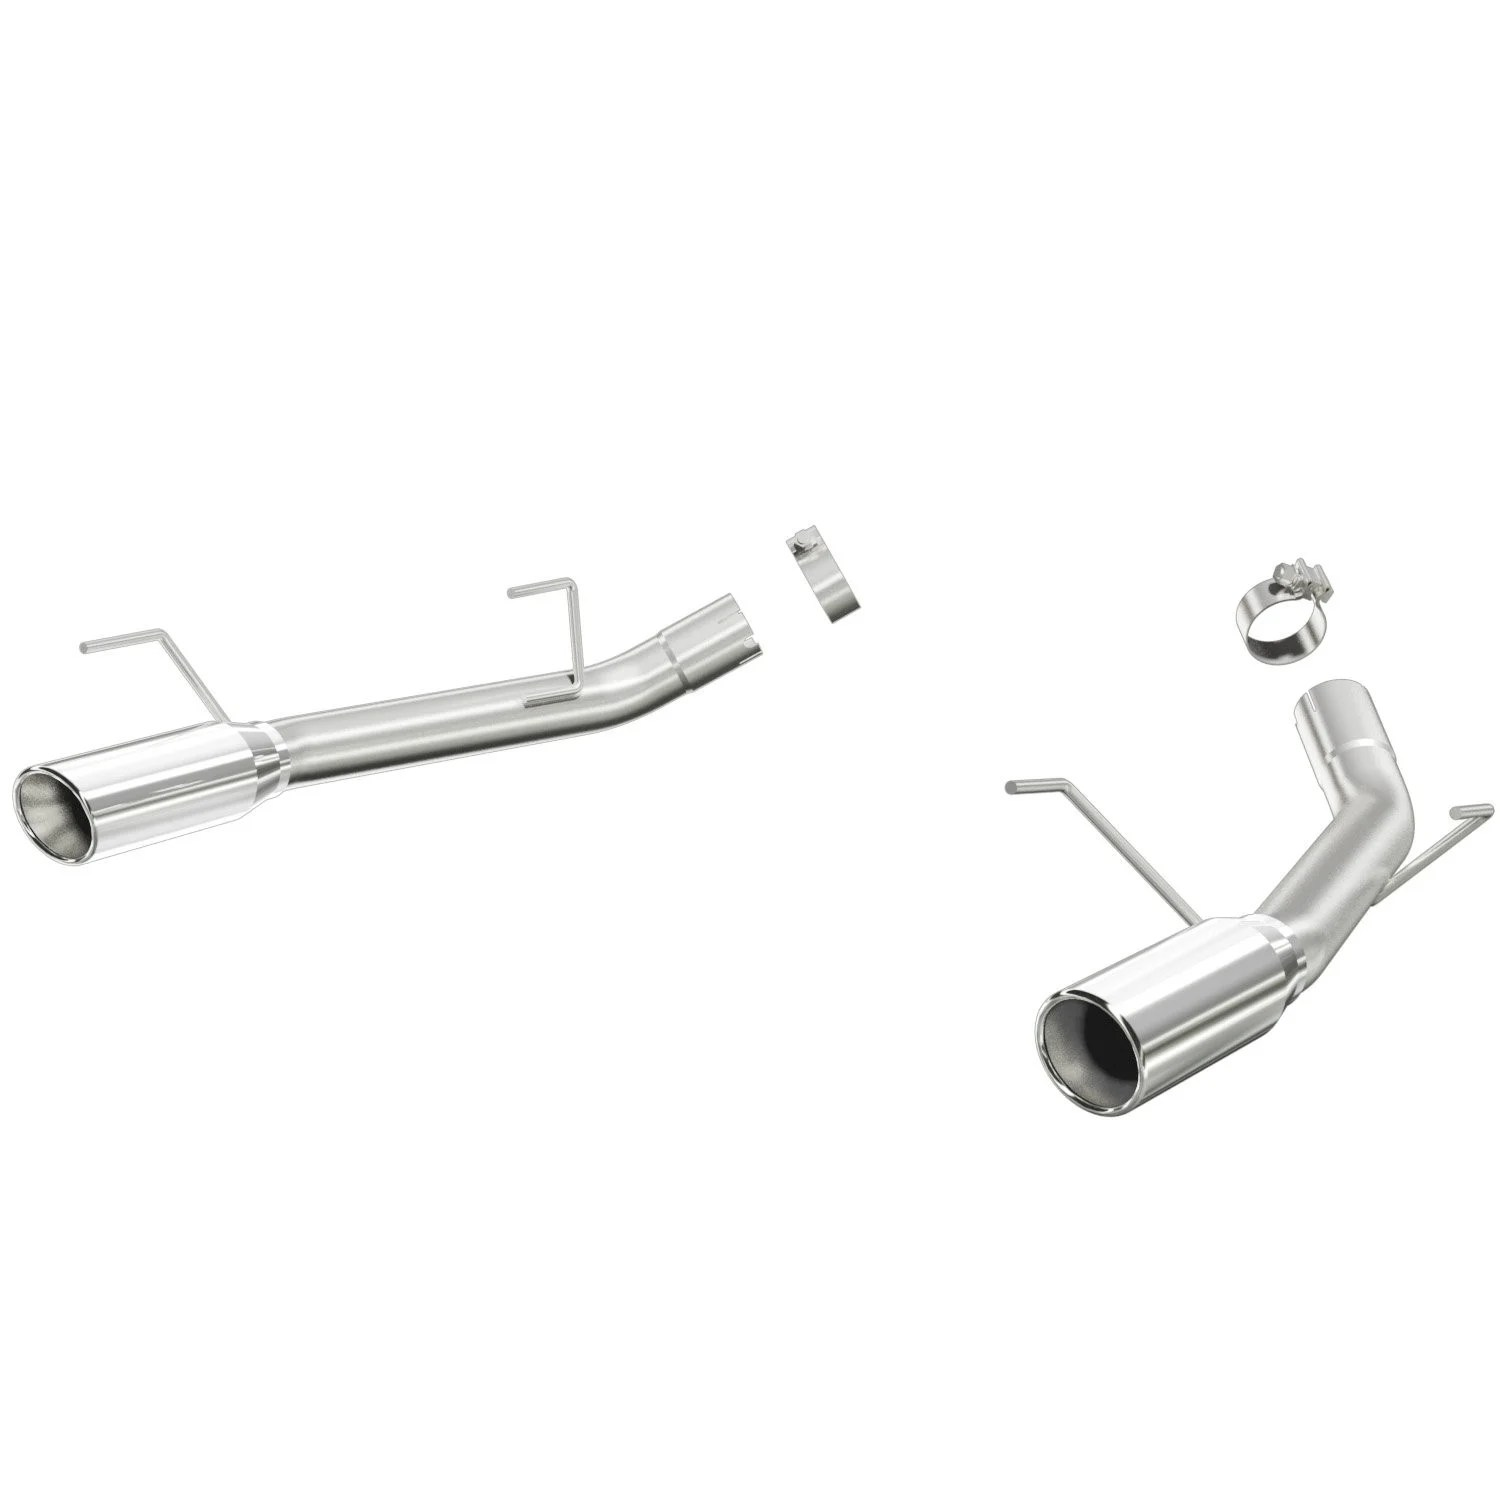 Magnaflow Axle Back Race Series Exhaust System